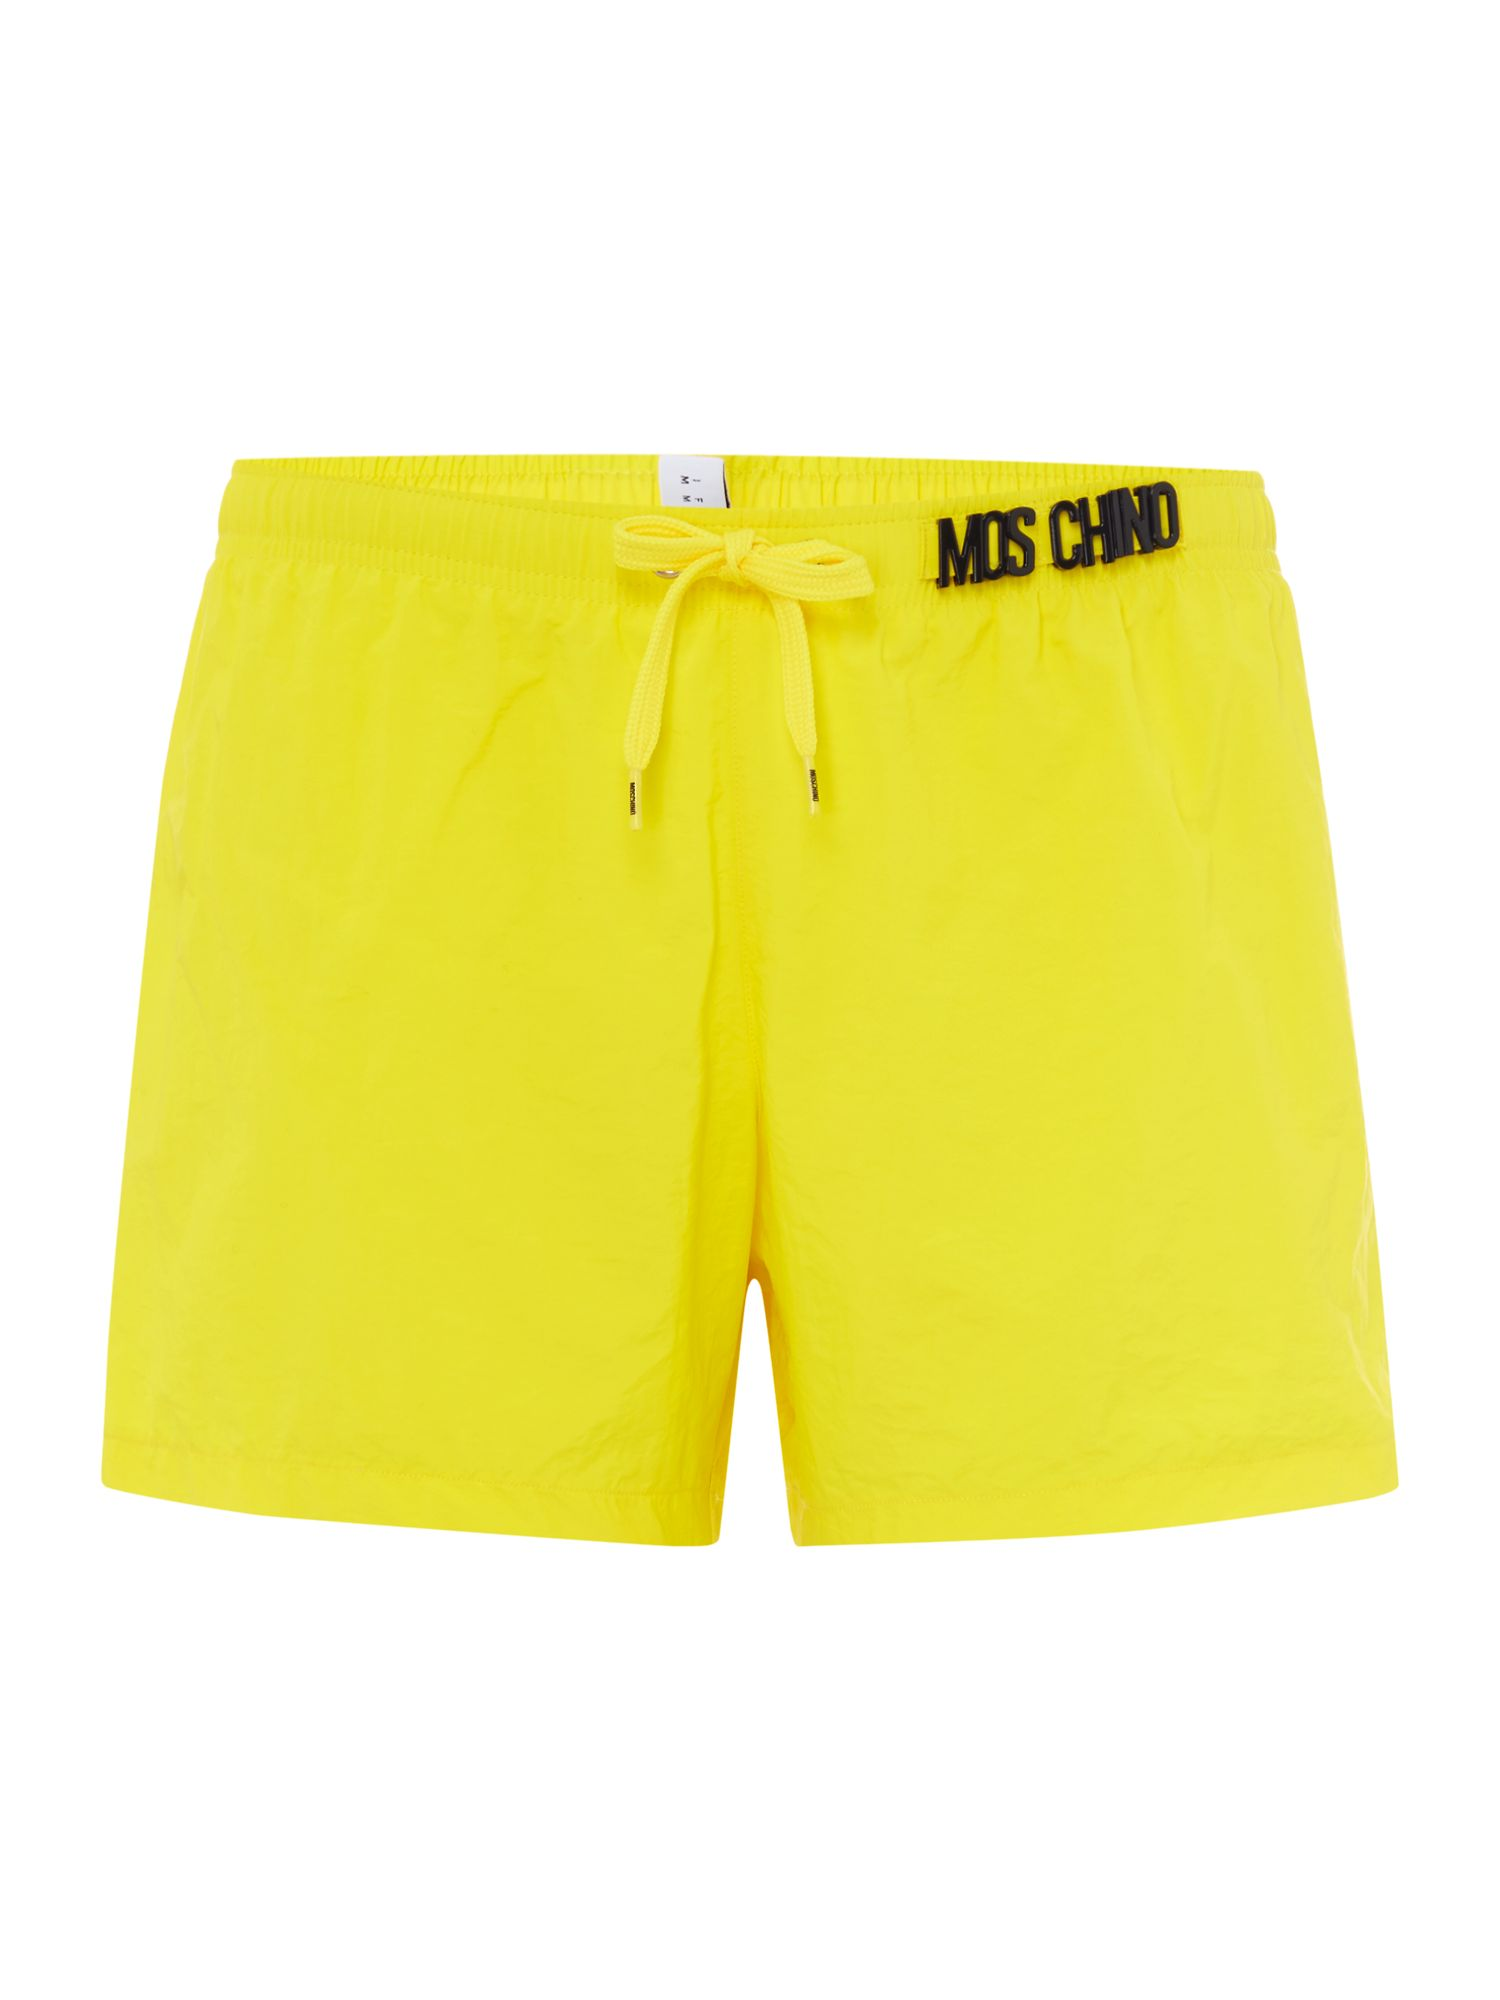 Men's Moschino All Over Logo Swim Shorts, Yellow